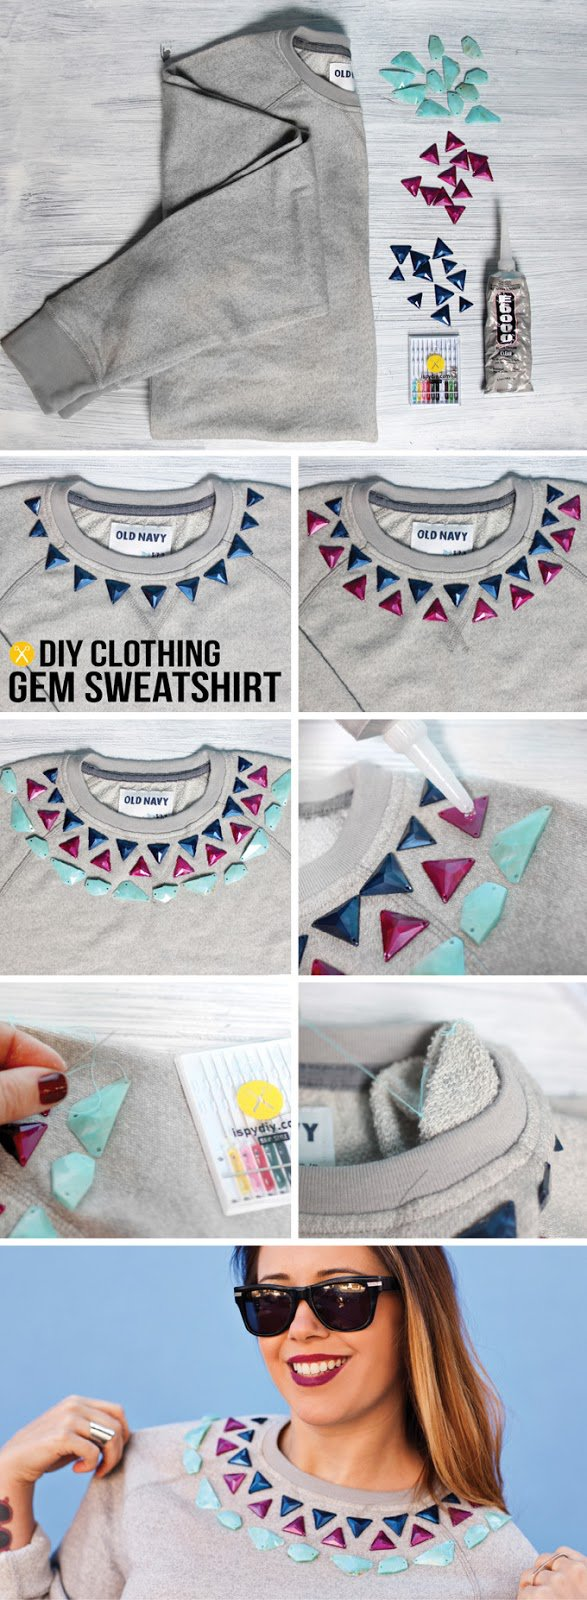 Lovely DIY Project To Renew Your Old Shirts